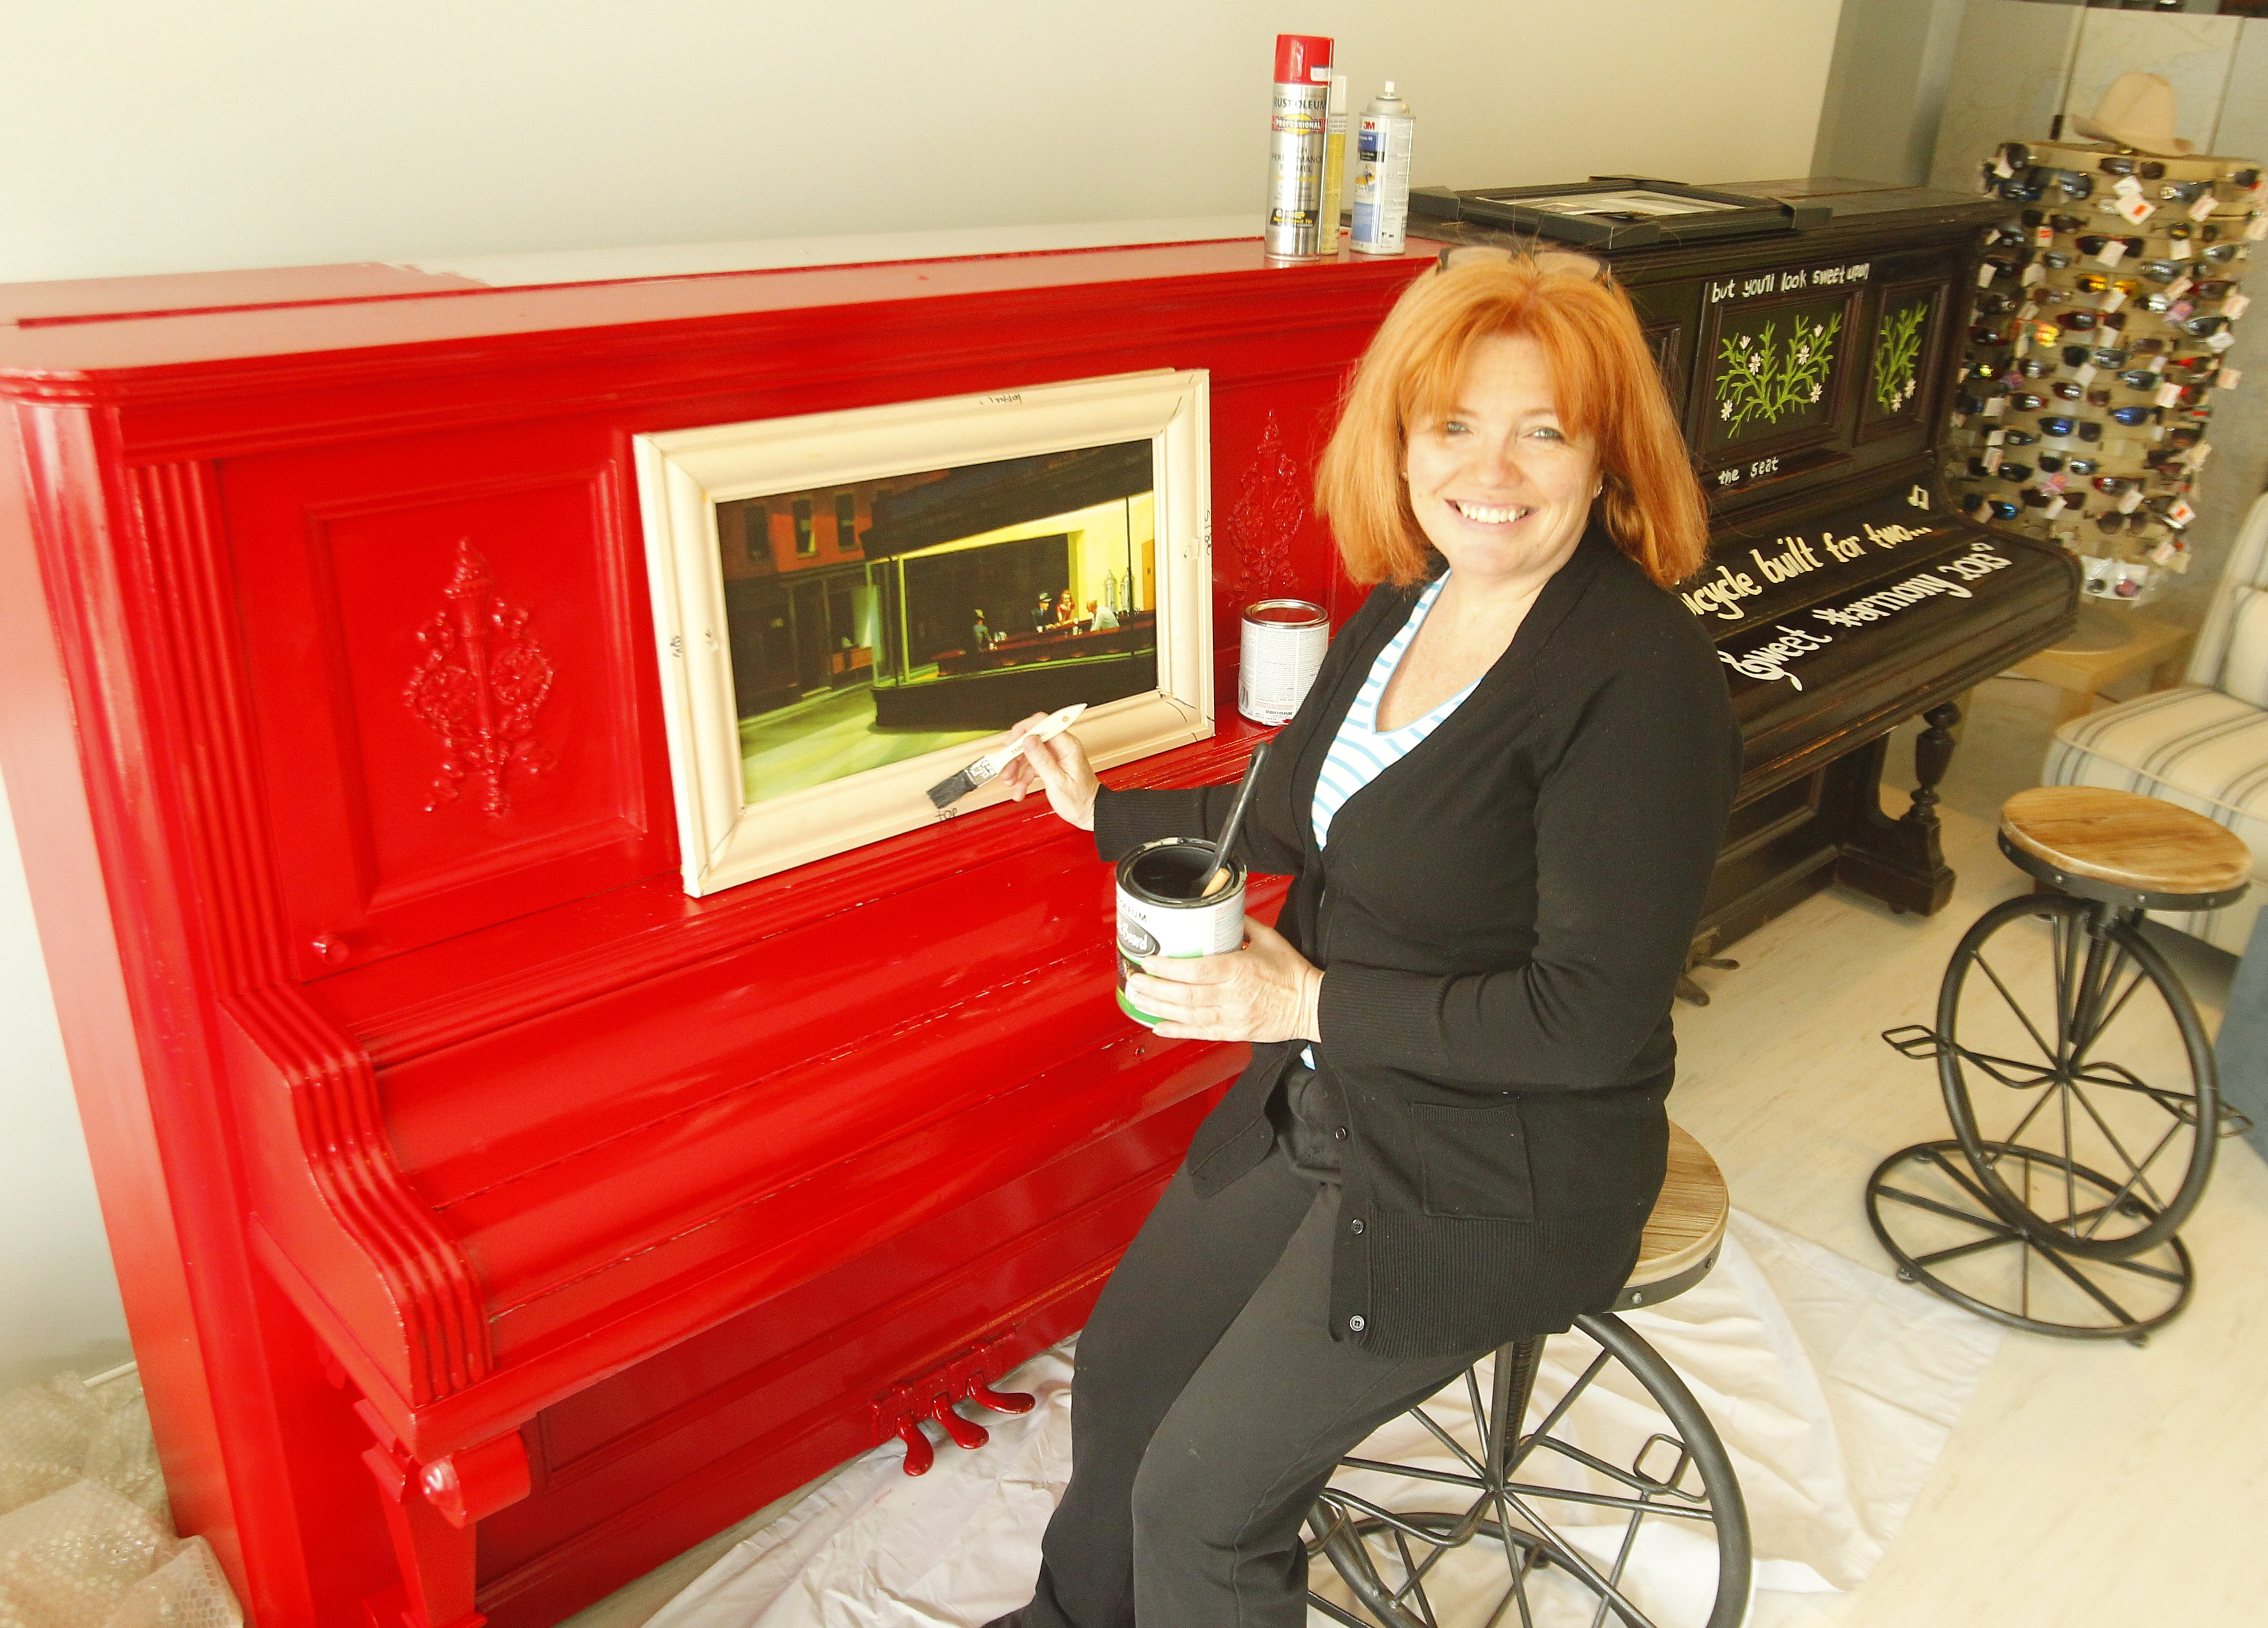 Ellen Martin launched a public art project in Lockport, N.Y., in 2013 that  placed used painted pianos in front of businesses for people to admire or play. Martin posed with two of the pianos in Lockport on  Tuesday, May 14, 2013.  (John Hickey/Buffalo News)